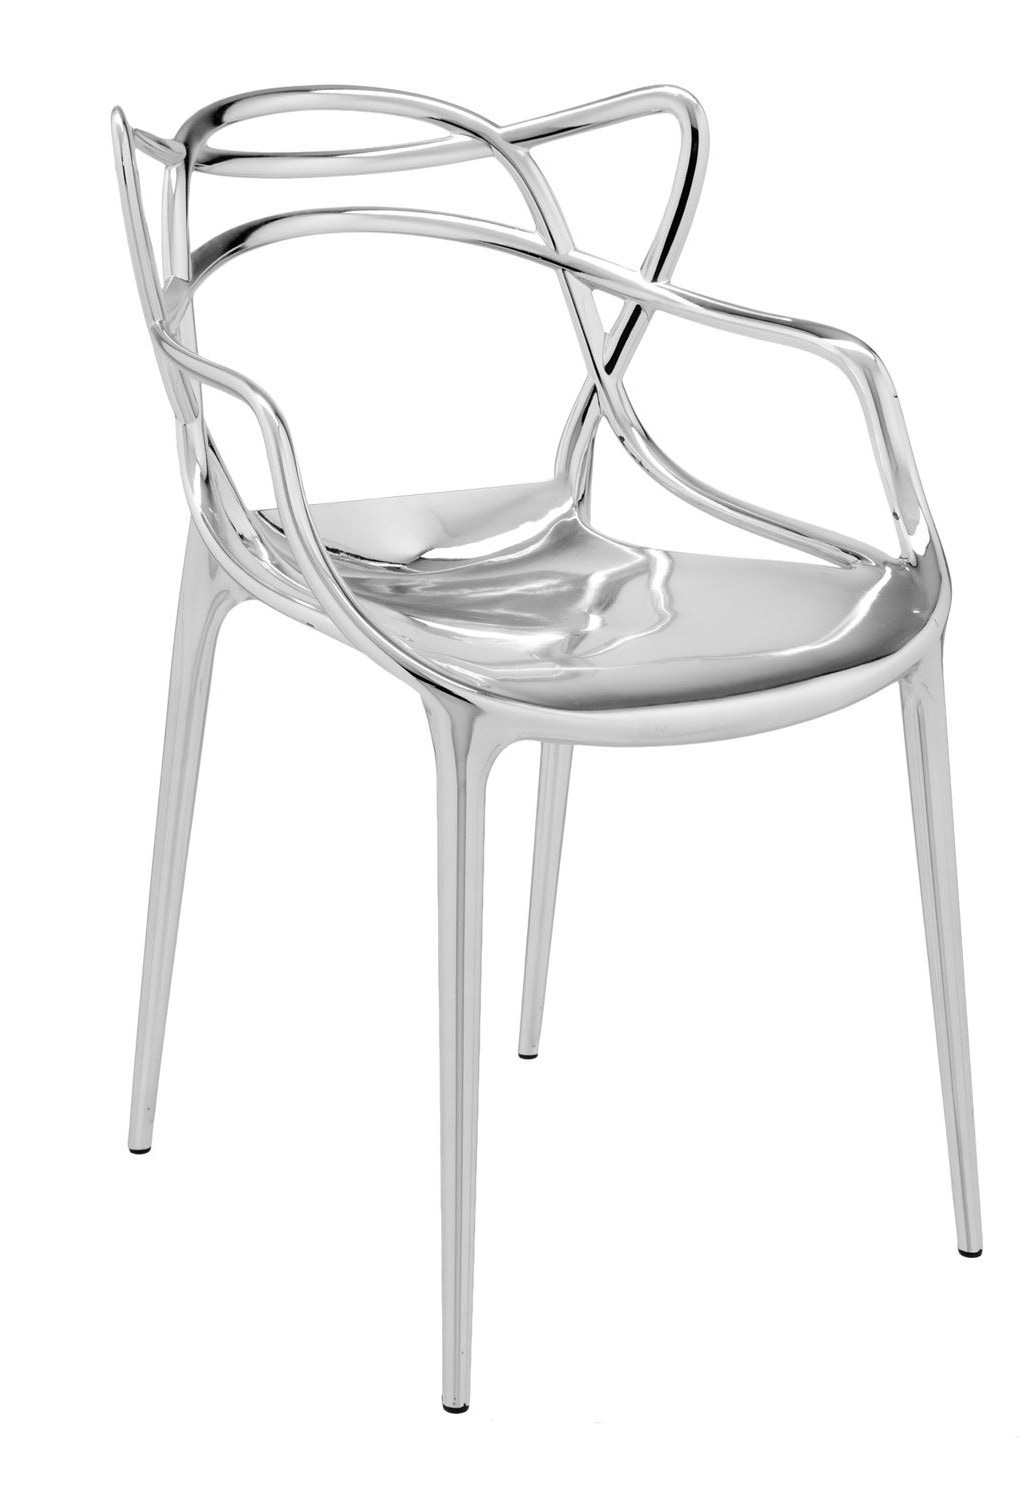 of htm crosley productdetail cafe ga in amelia chair hover metal galvanized to set zoom furniture two